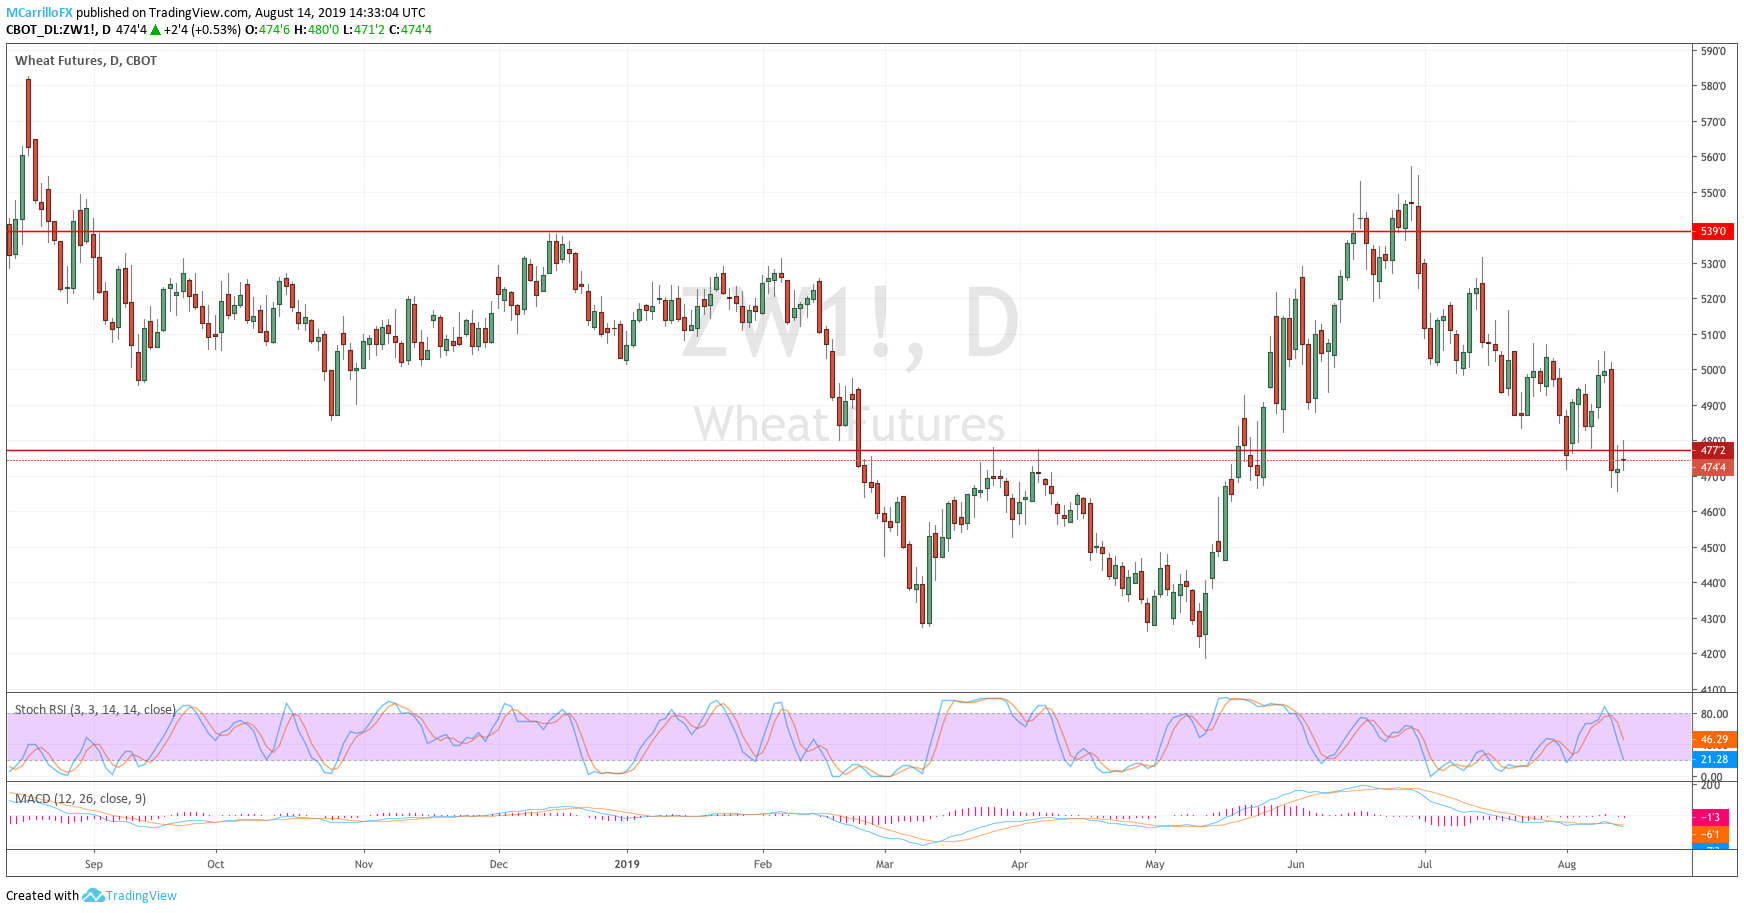 Price of wheat daily chart August 14